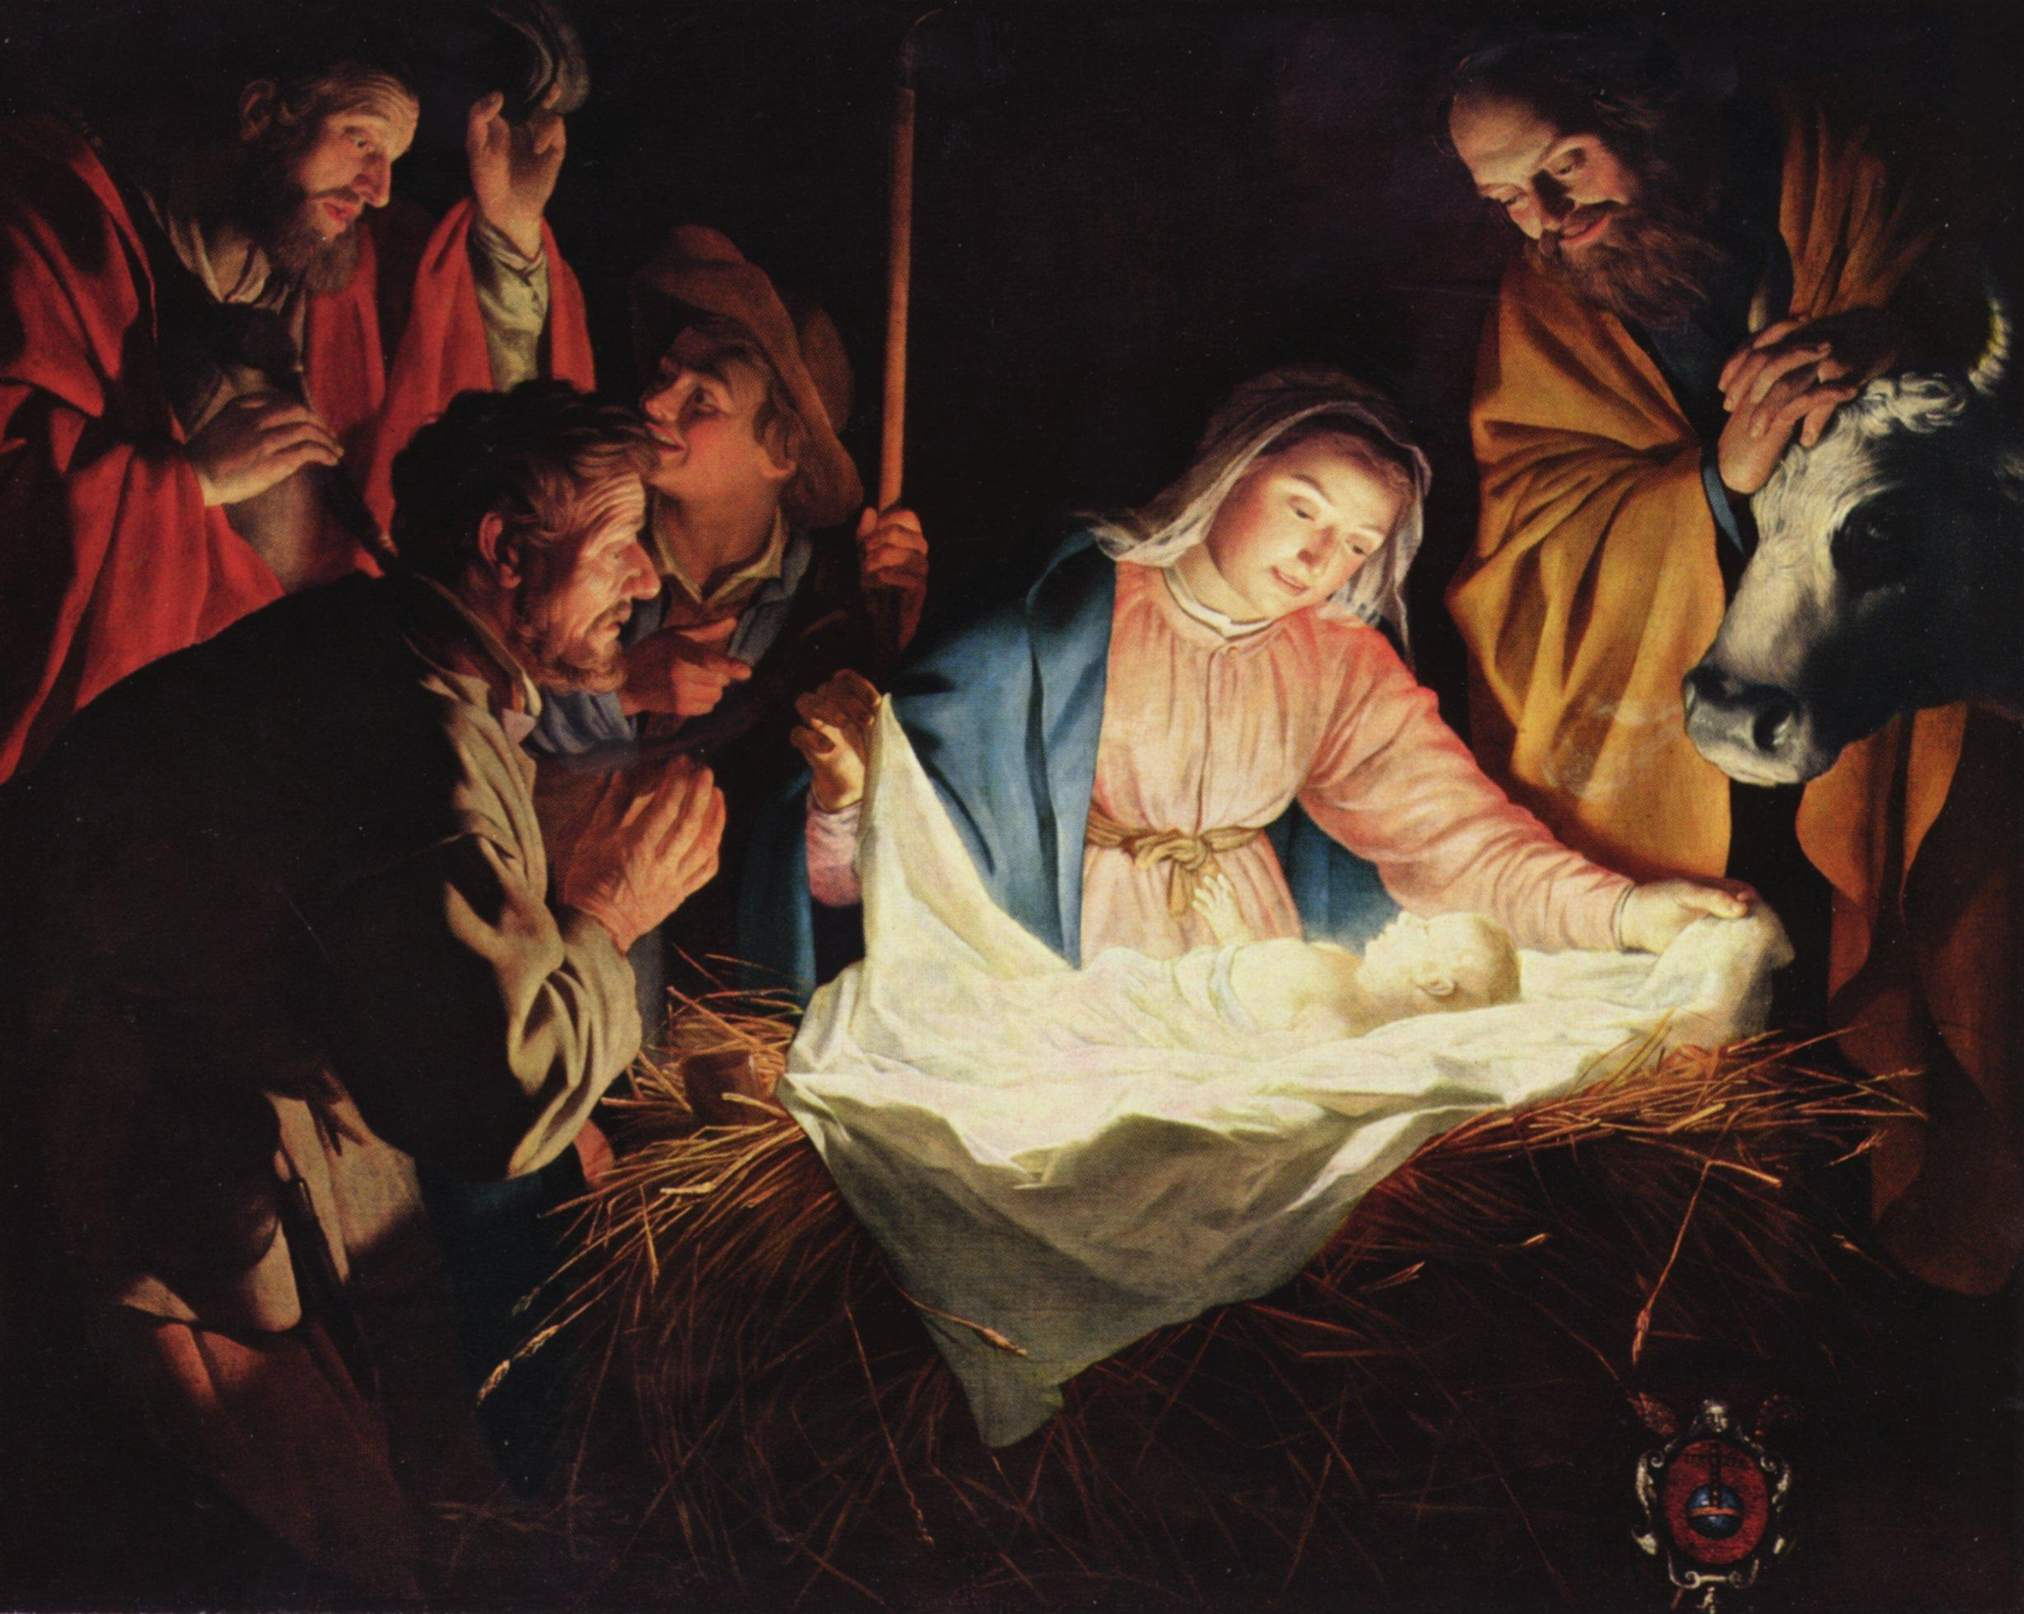 Gerard van Honthorst, Adoration of the Shepherds